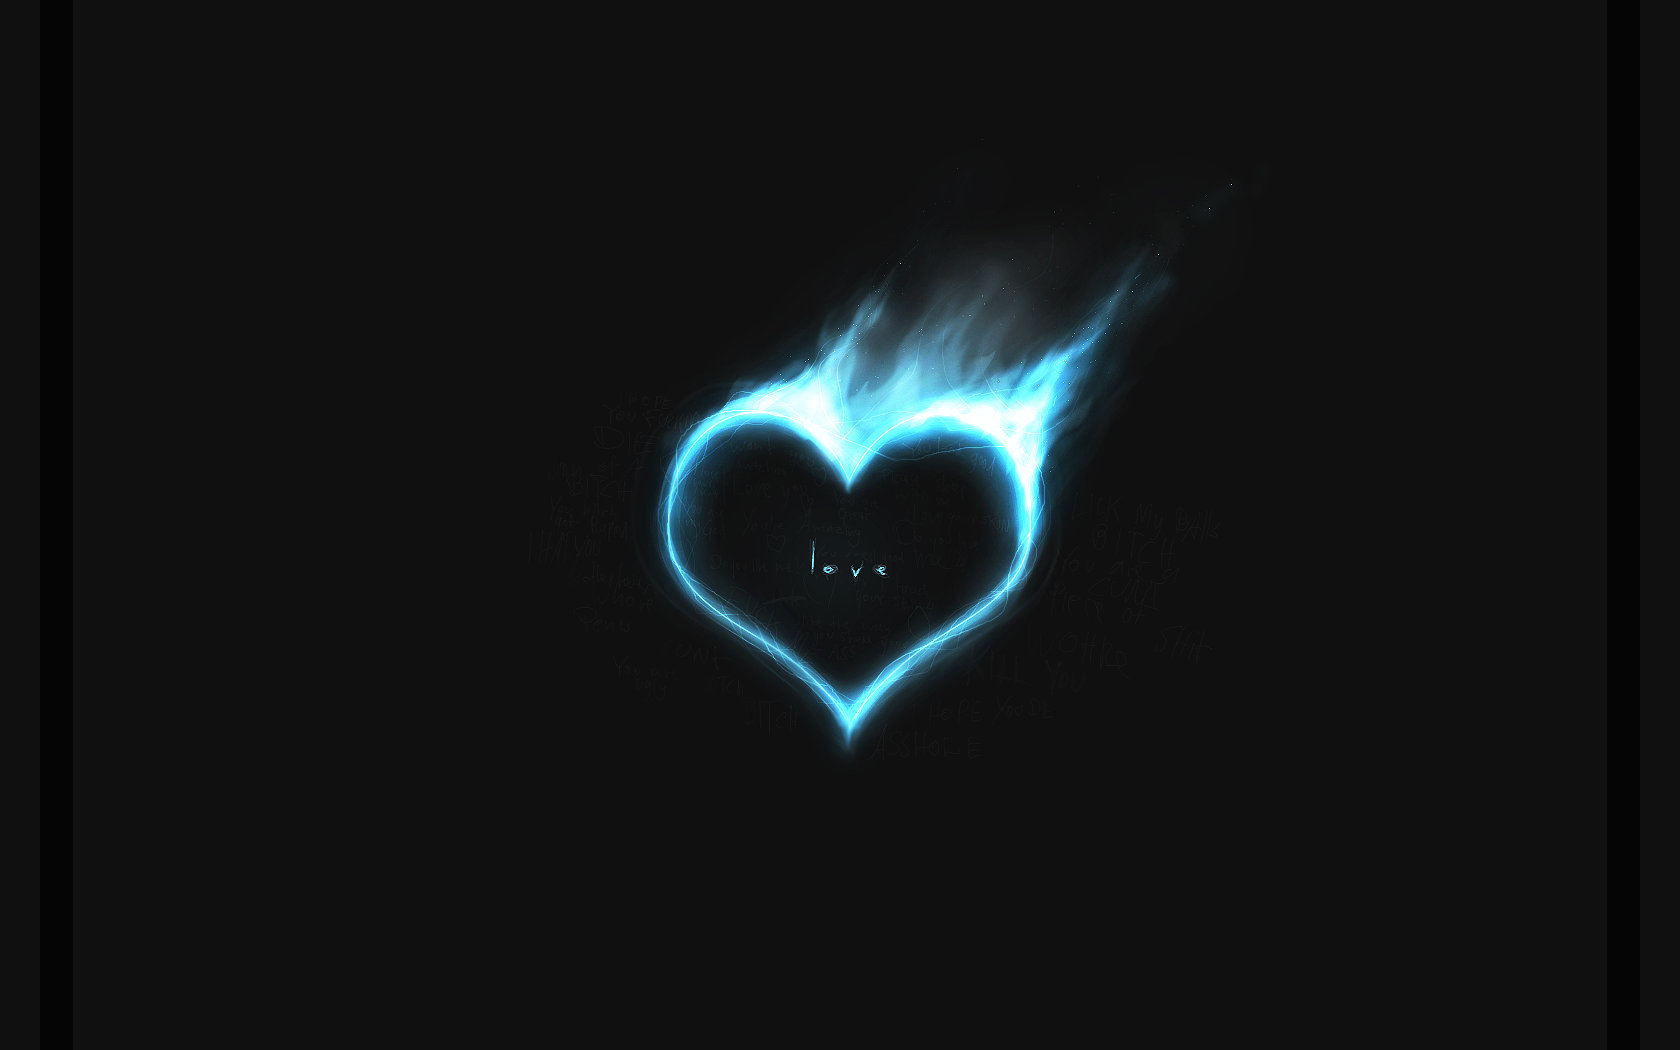 1680x1050 Blue heart in fire